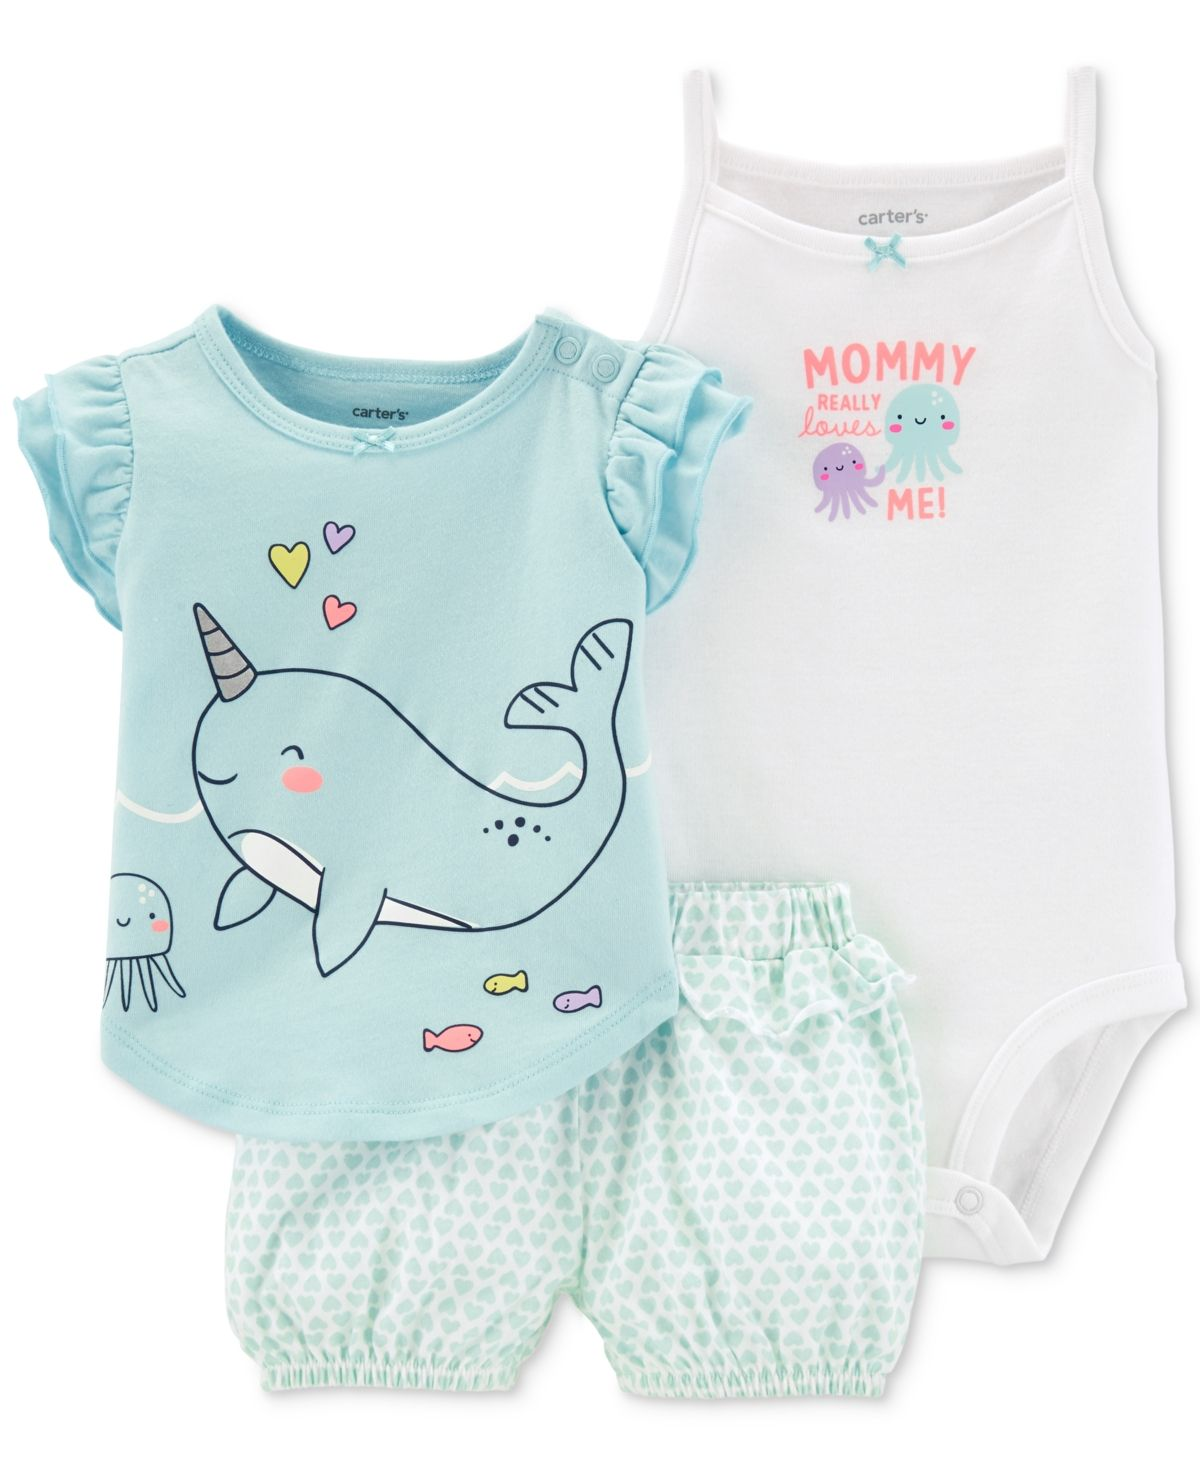 Bodysuit /& Shorts Set Mommy Loves Me NEW Carter/'s Baby Boys Whale 3-PC Shirt